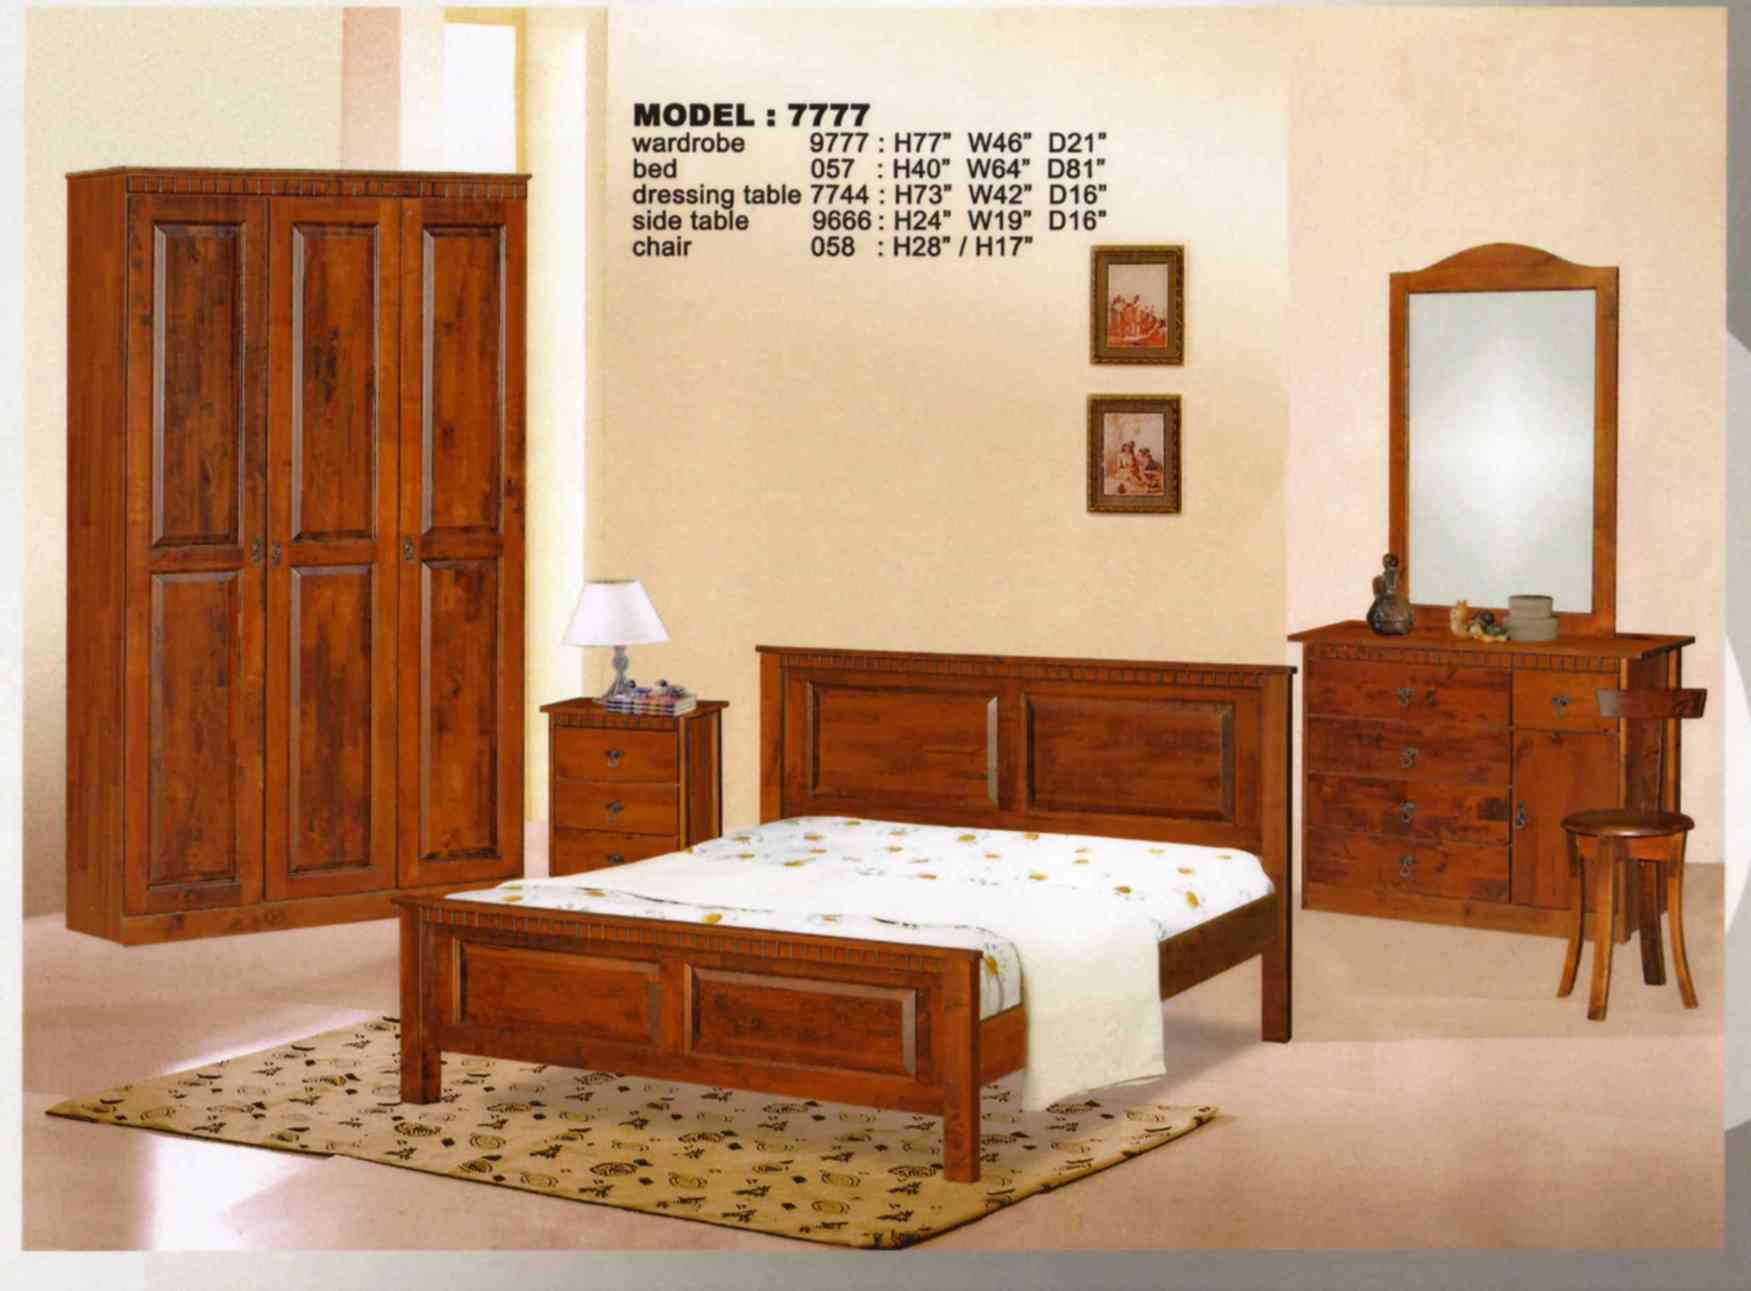 Bedroom Set Kuala Lumpur Bedroom Set Kuala Lumpur Suppliers And Manufacturers At Alibaba Com